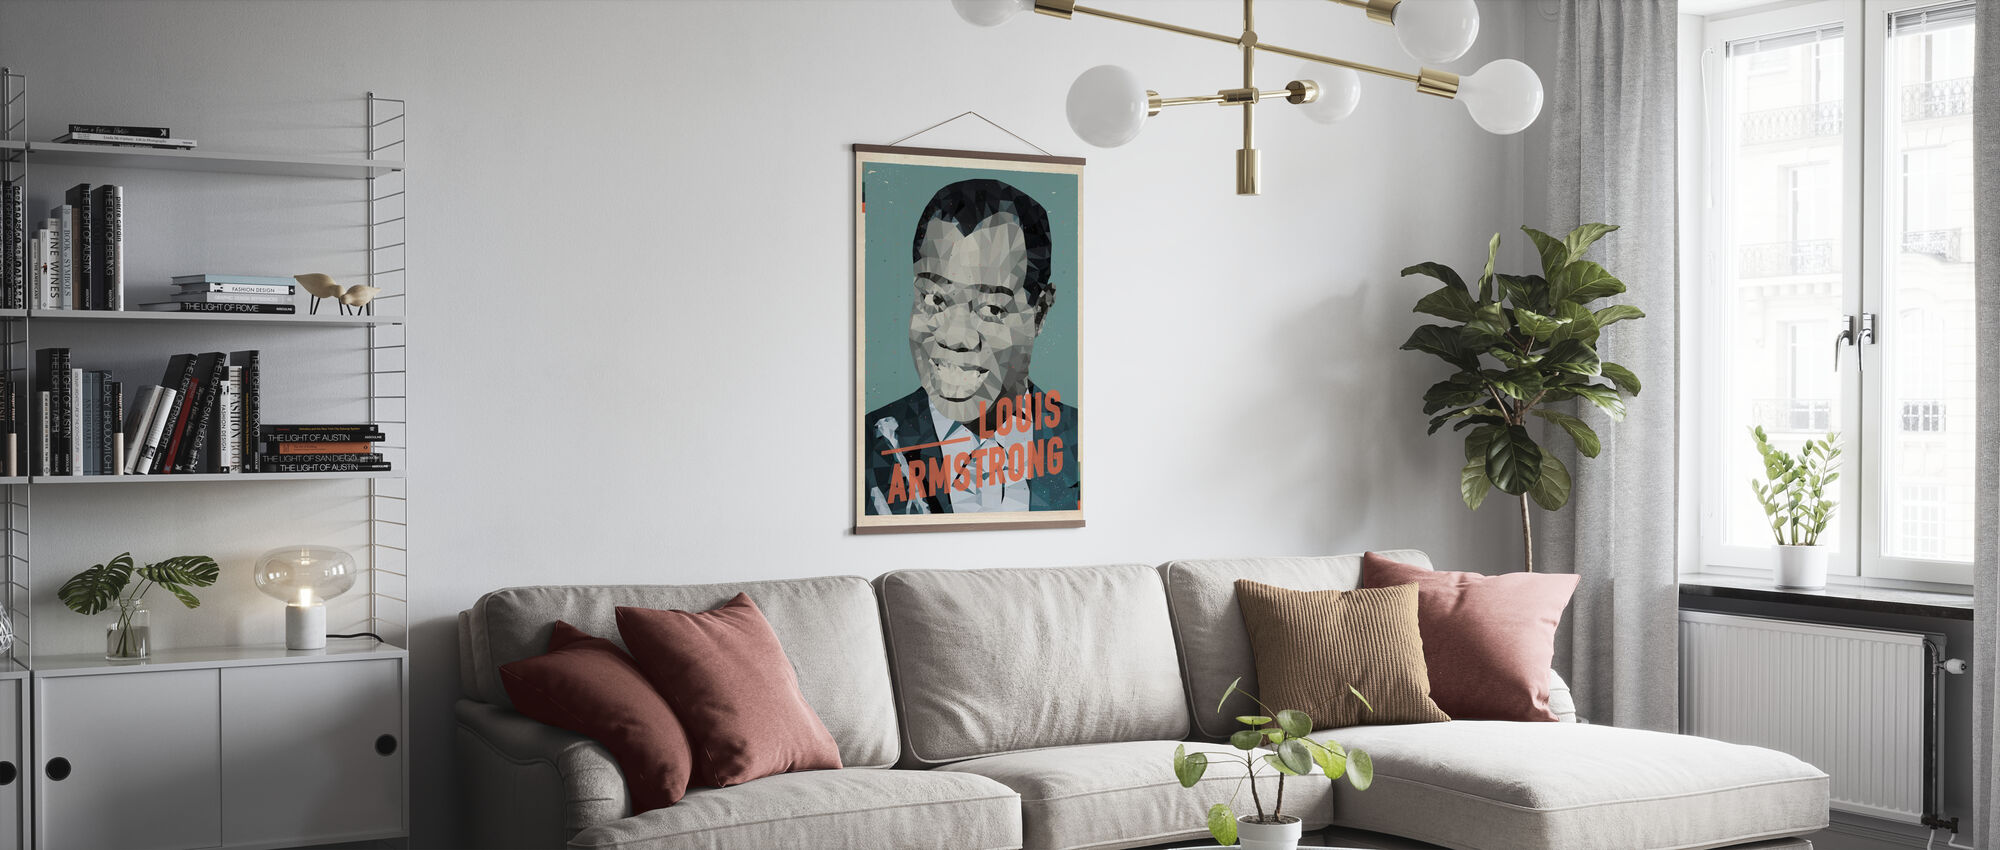 If You Have to Ask What Jazz is - You'll Never Know - Poster - Living Room